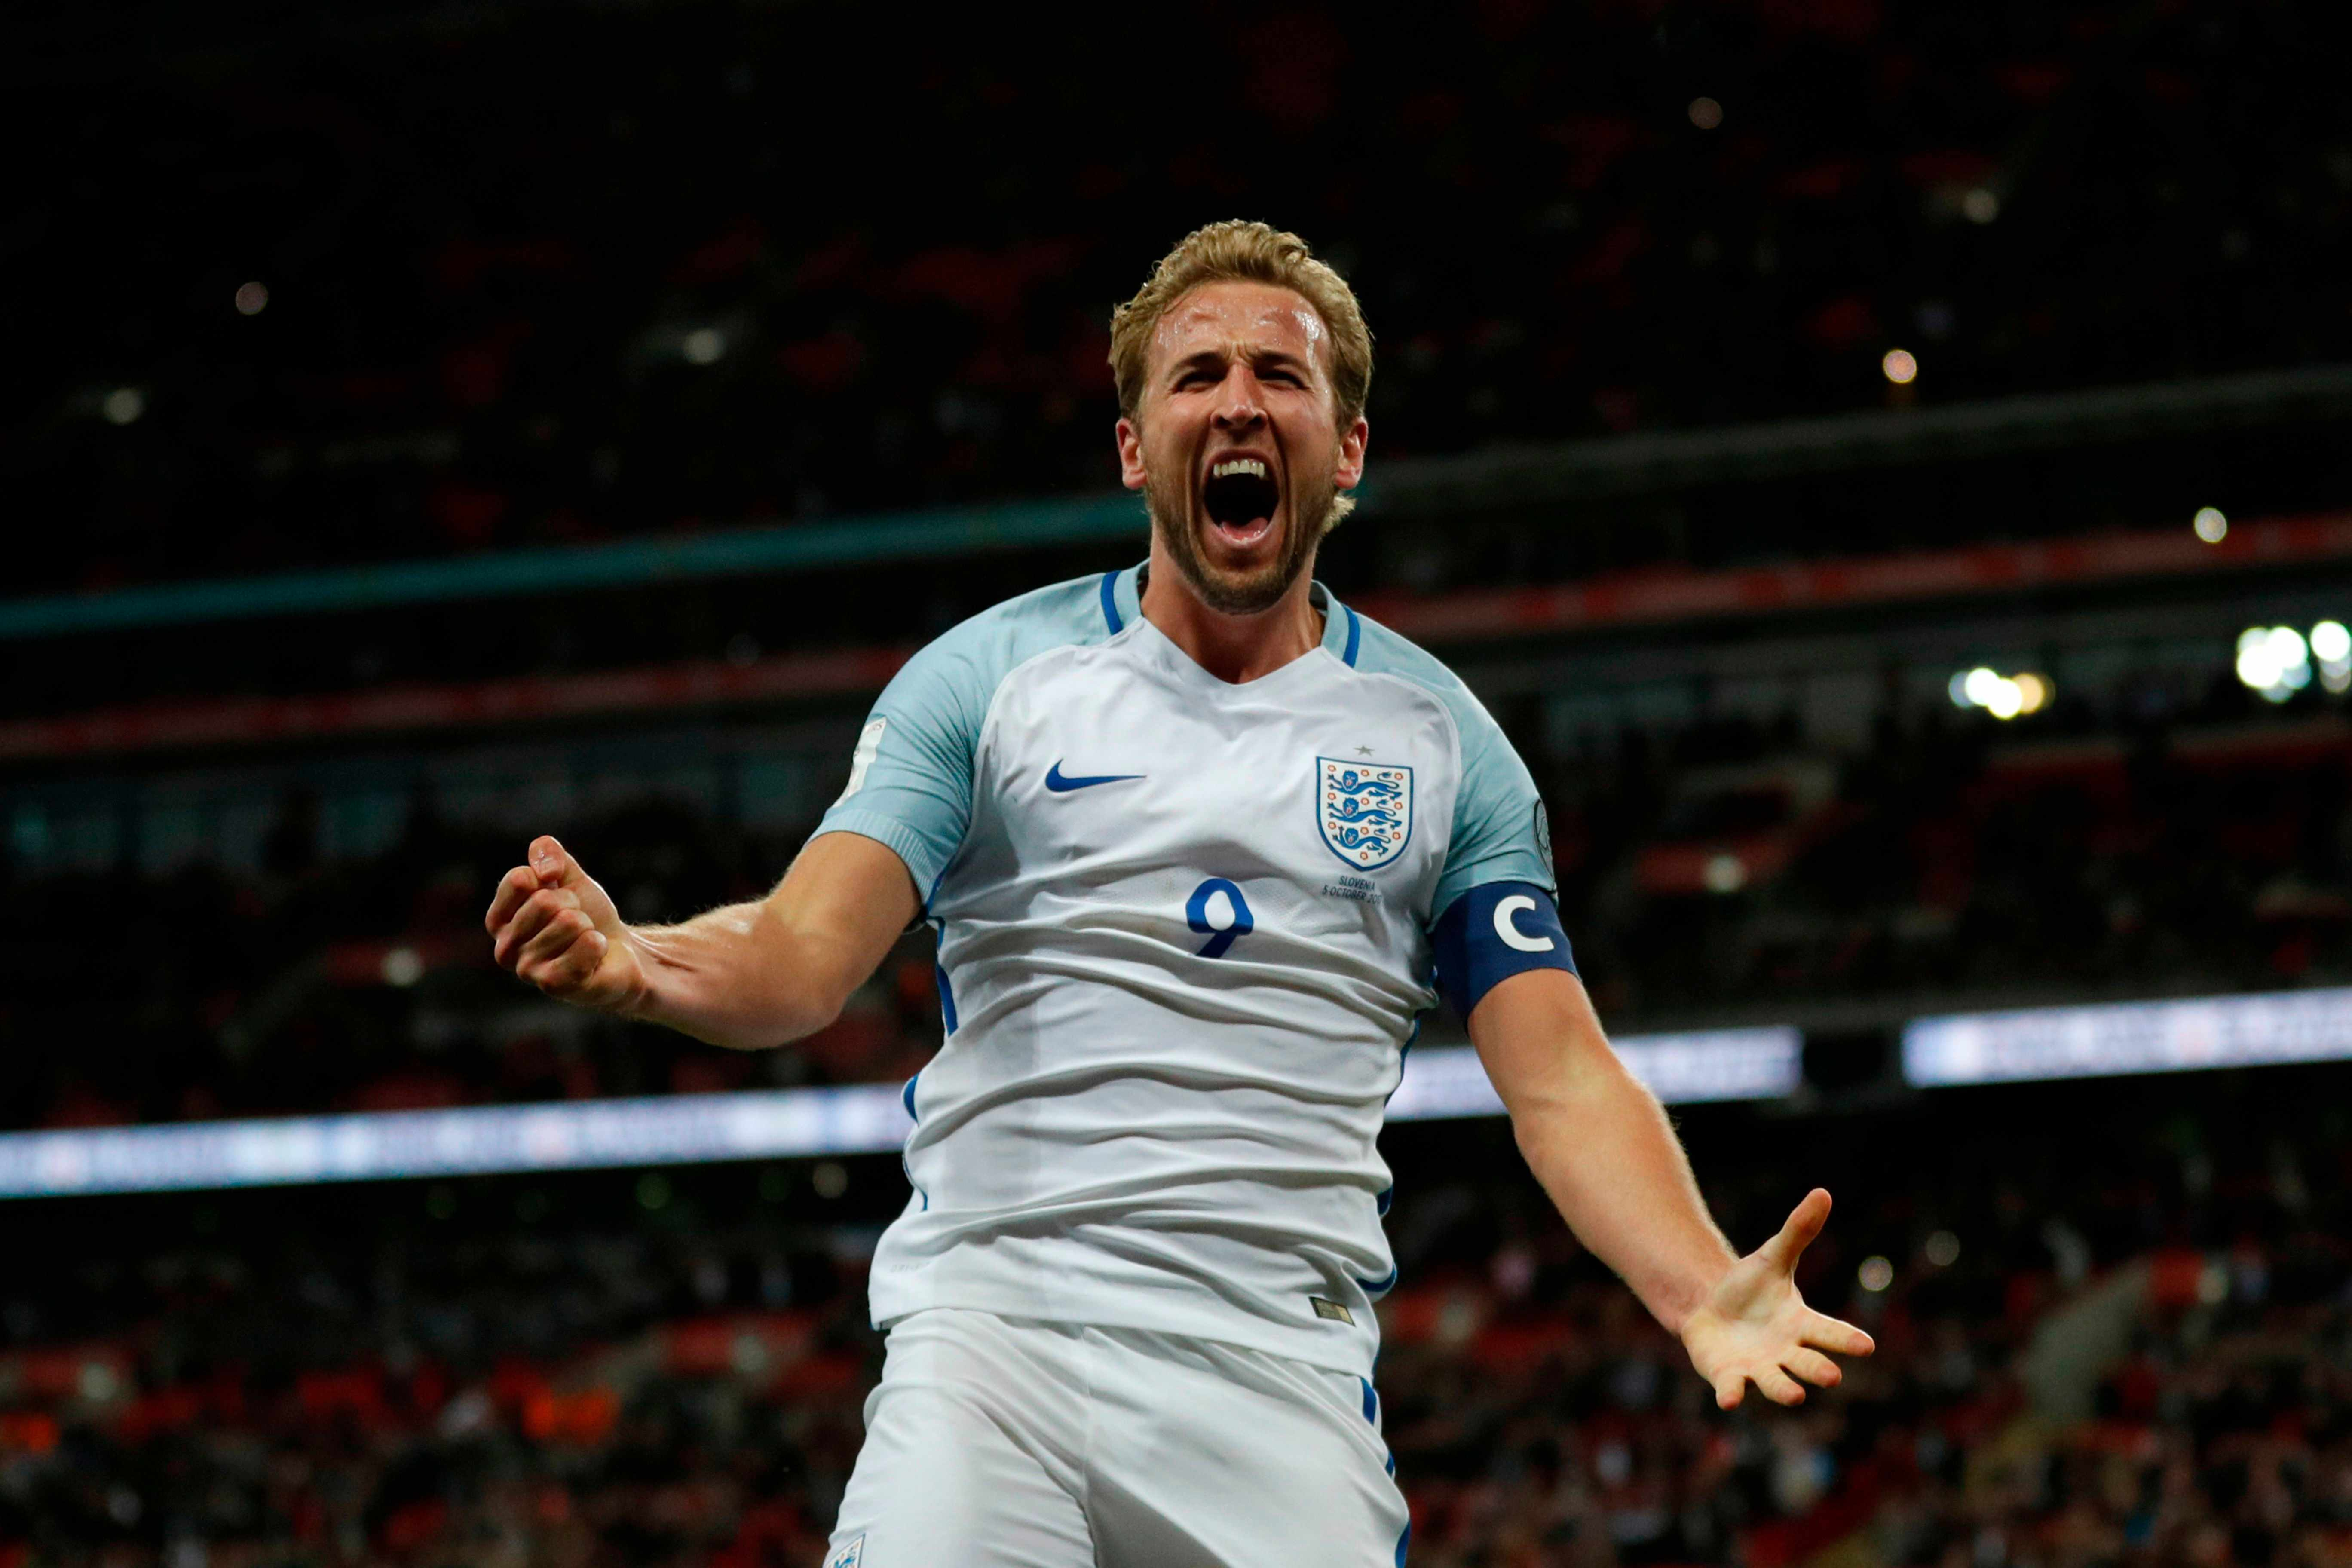 England's striker Harry Kane celebrates scoring the opening goal during the FIFA World Cup 2018 qualification football match between England and Slovenia at Wembley Stadium in London on October 5, 2017.  / AFP PHOTO / Adrian DENNIS / NOT FOR MARKETING OR ADVERTISING USE / RESTRICTED TO EDITORIAL USE        (Photo credit should read ADRIAN DENNIS/AFP/Getty Images)  Getty, TL